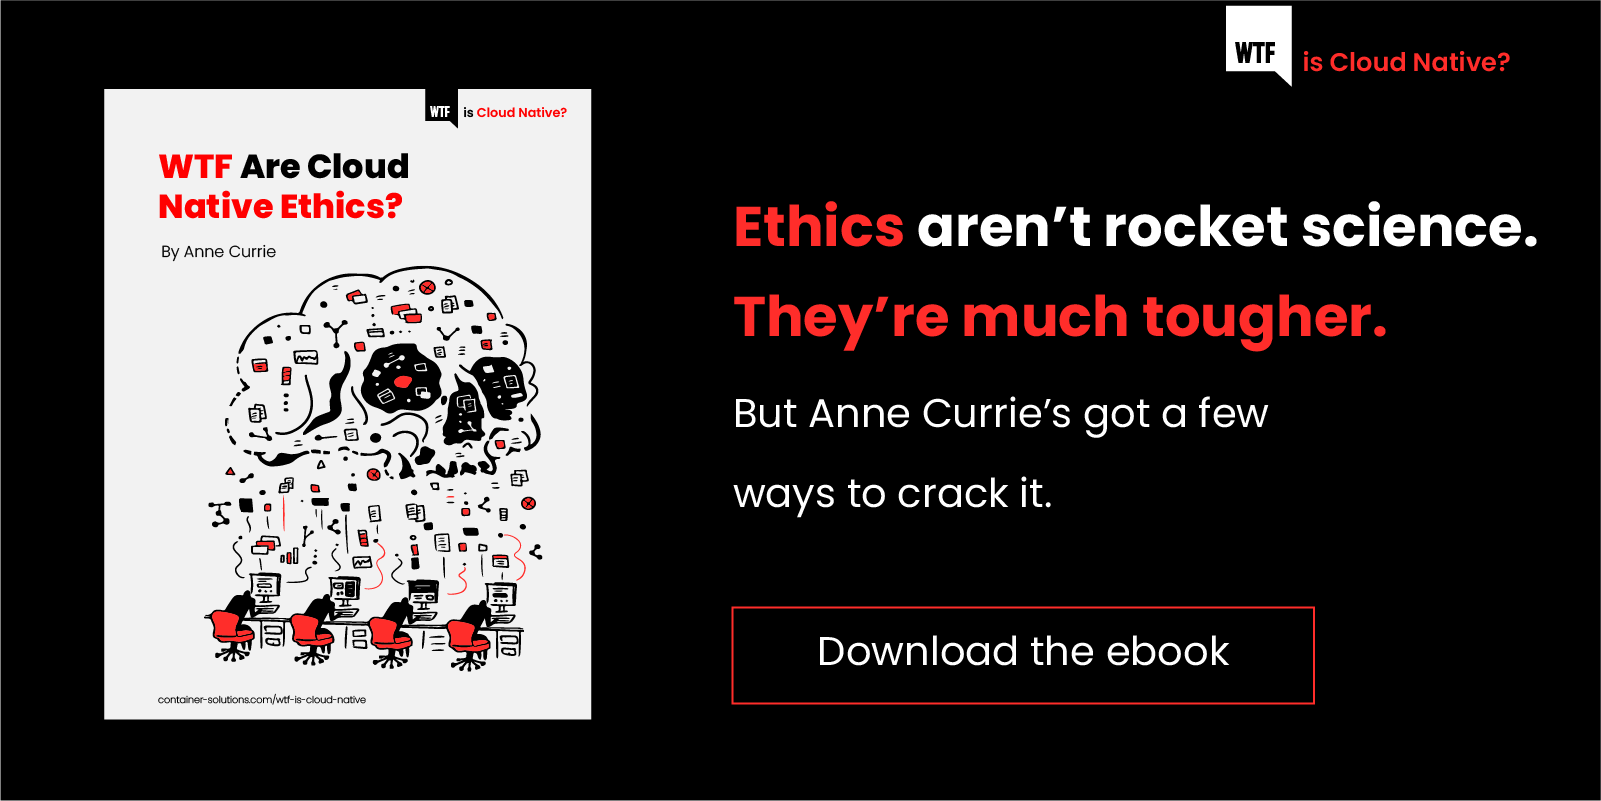 WTF_ethics_ebook.png